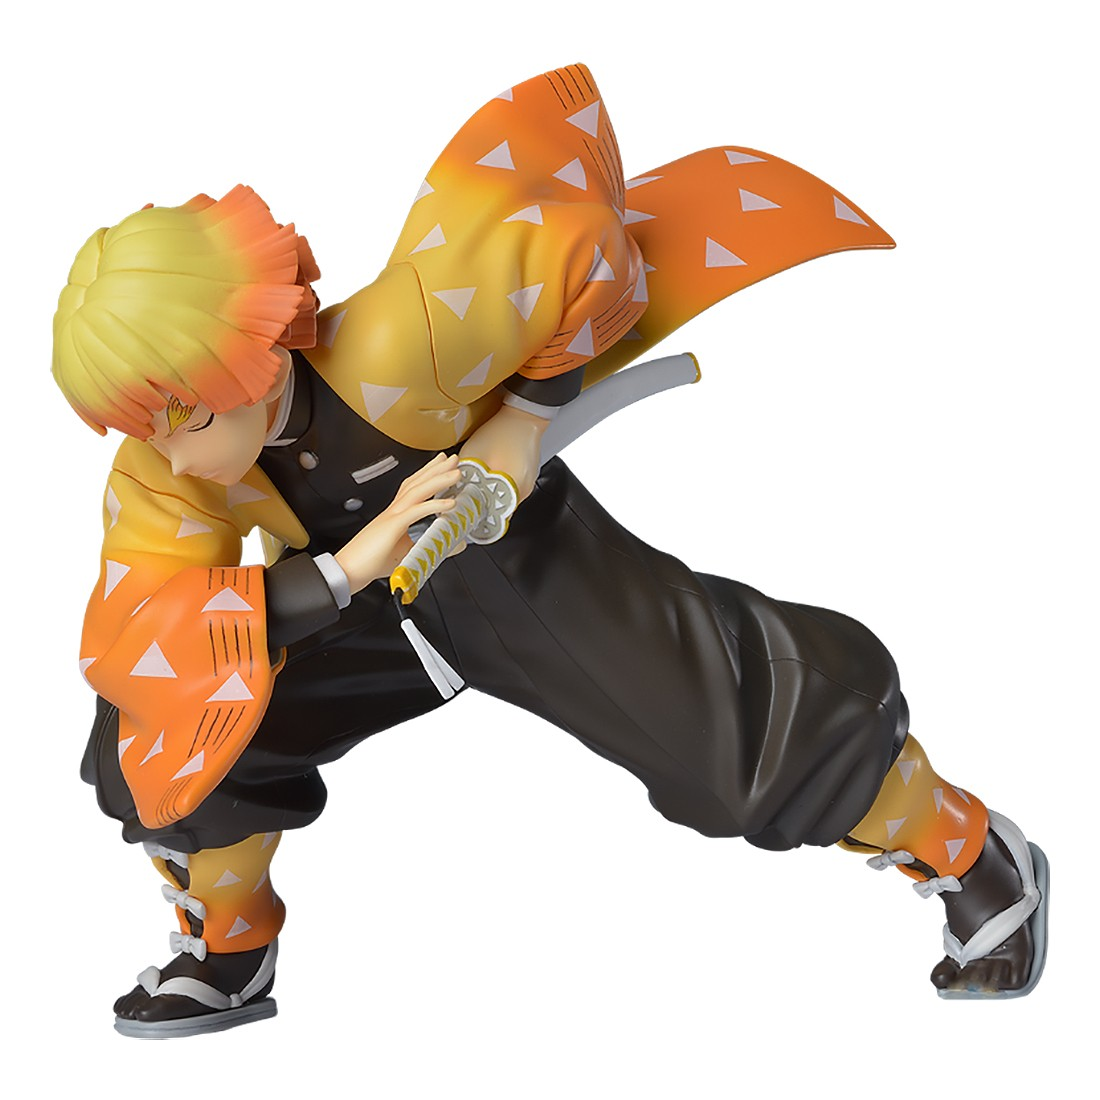 PREORDER - Sega Demon Slayer Kimetsu no Yaiba Agatsuma Zenitsu SPM Figure (orange)